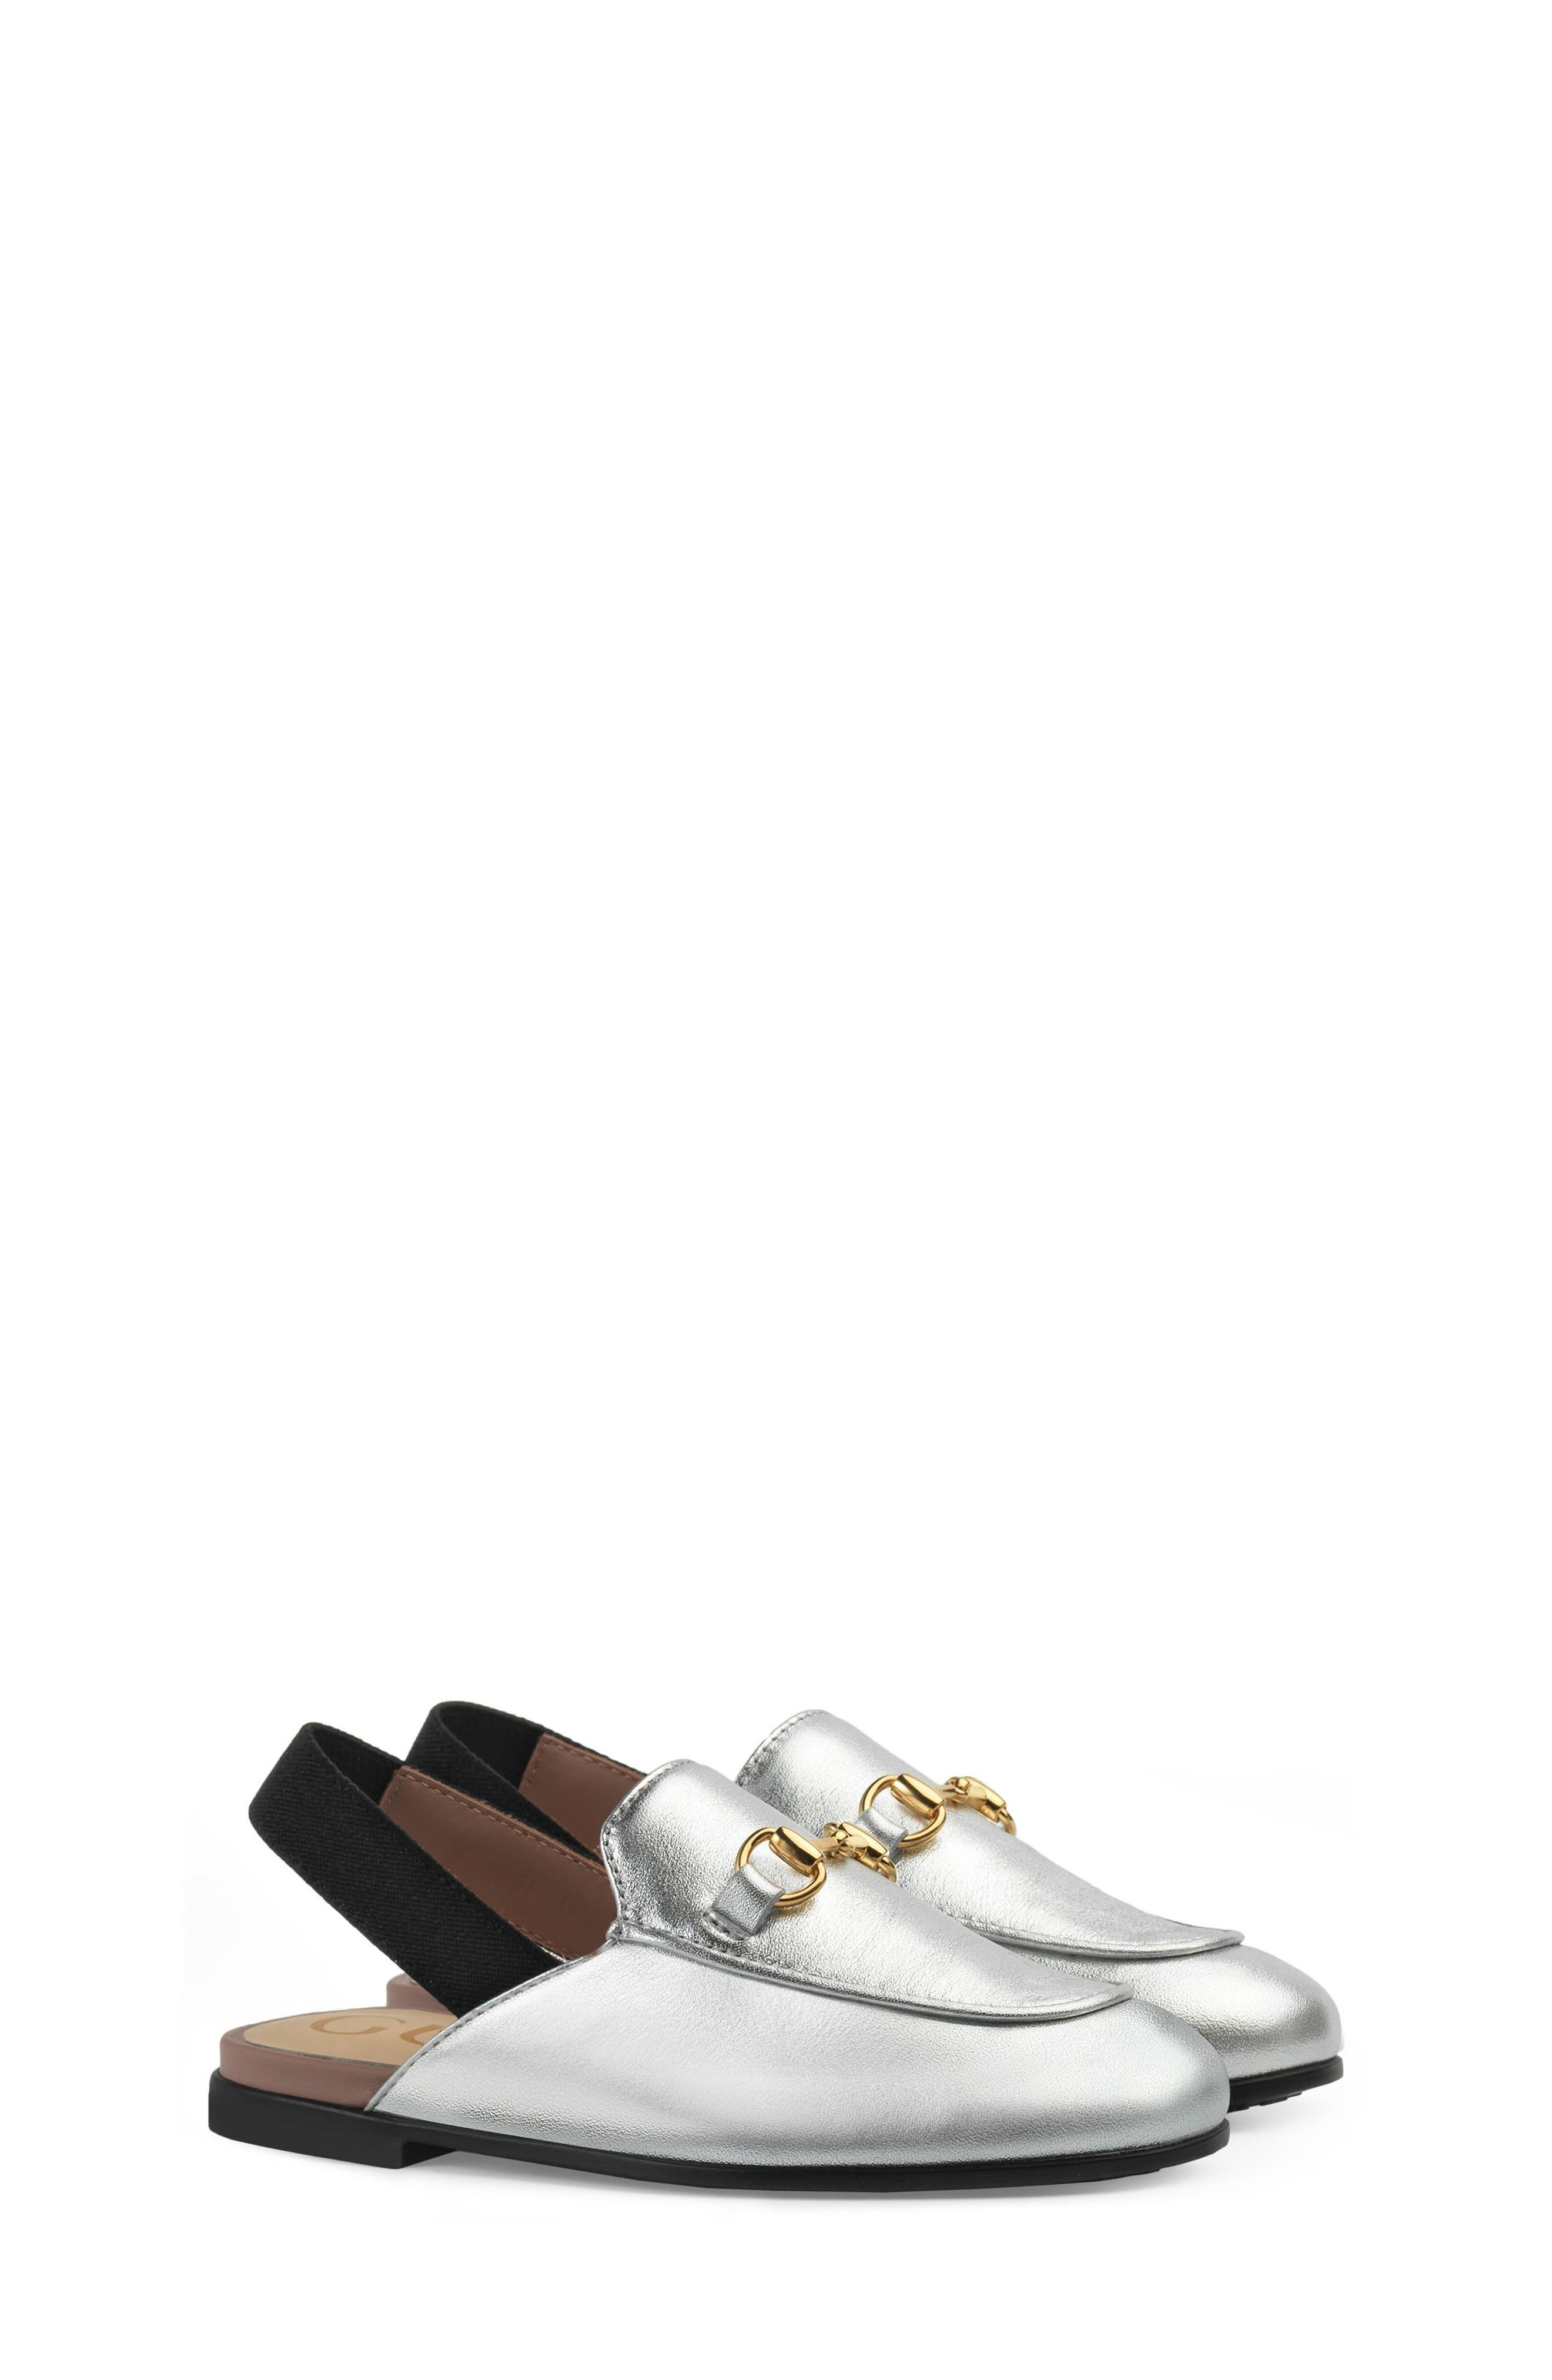 Alternate Image 1 Selected - Gucci Princetown Loafer Mule (Toddler & Little Kid)